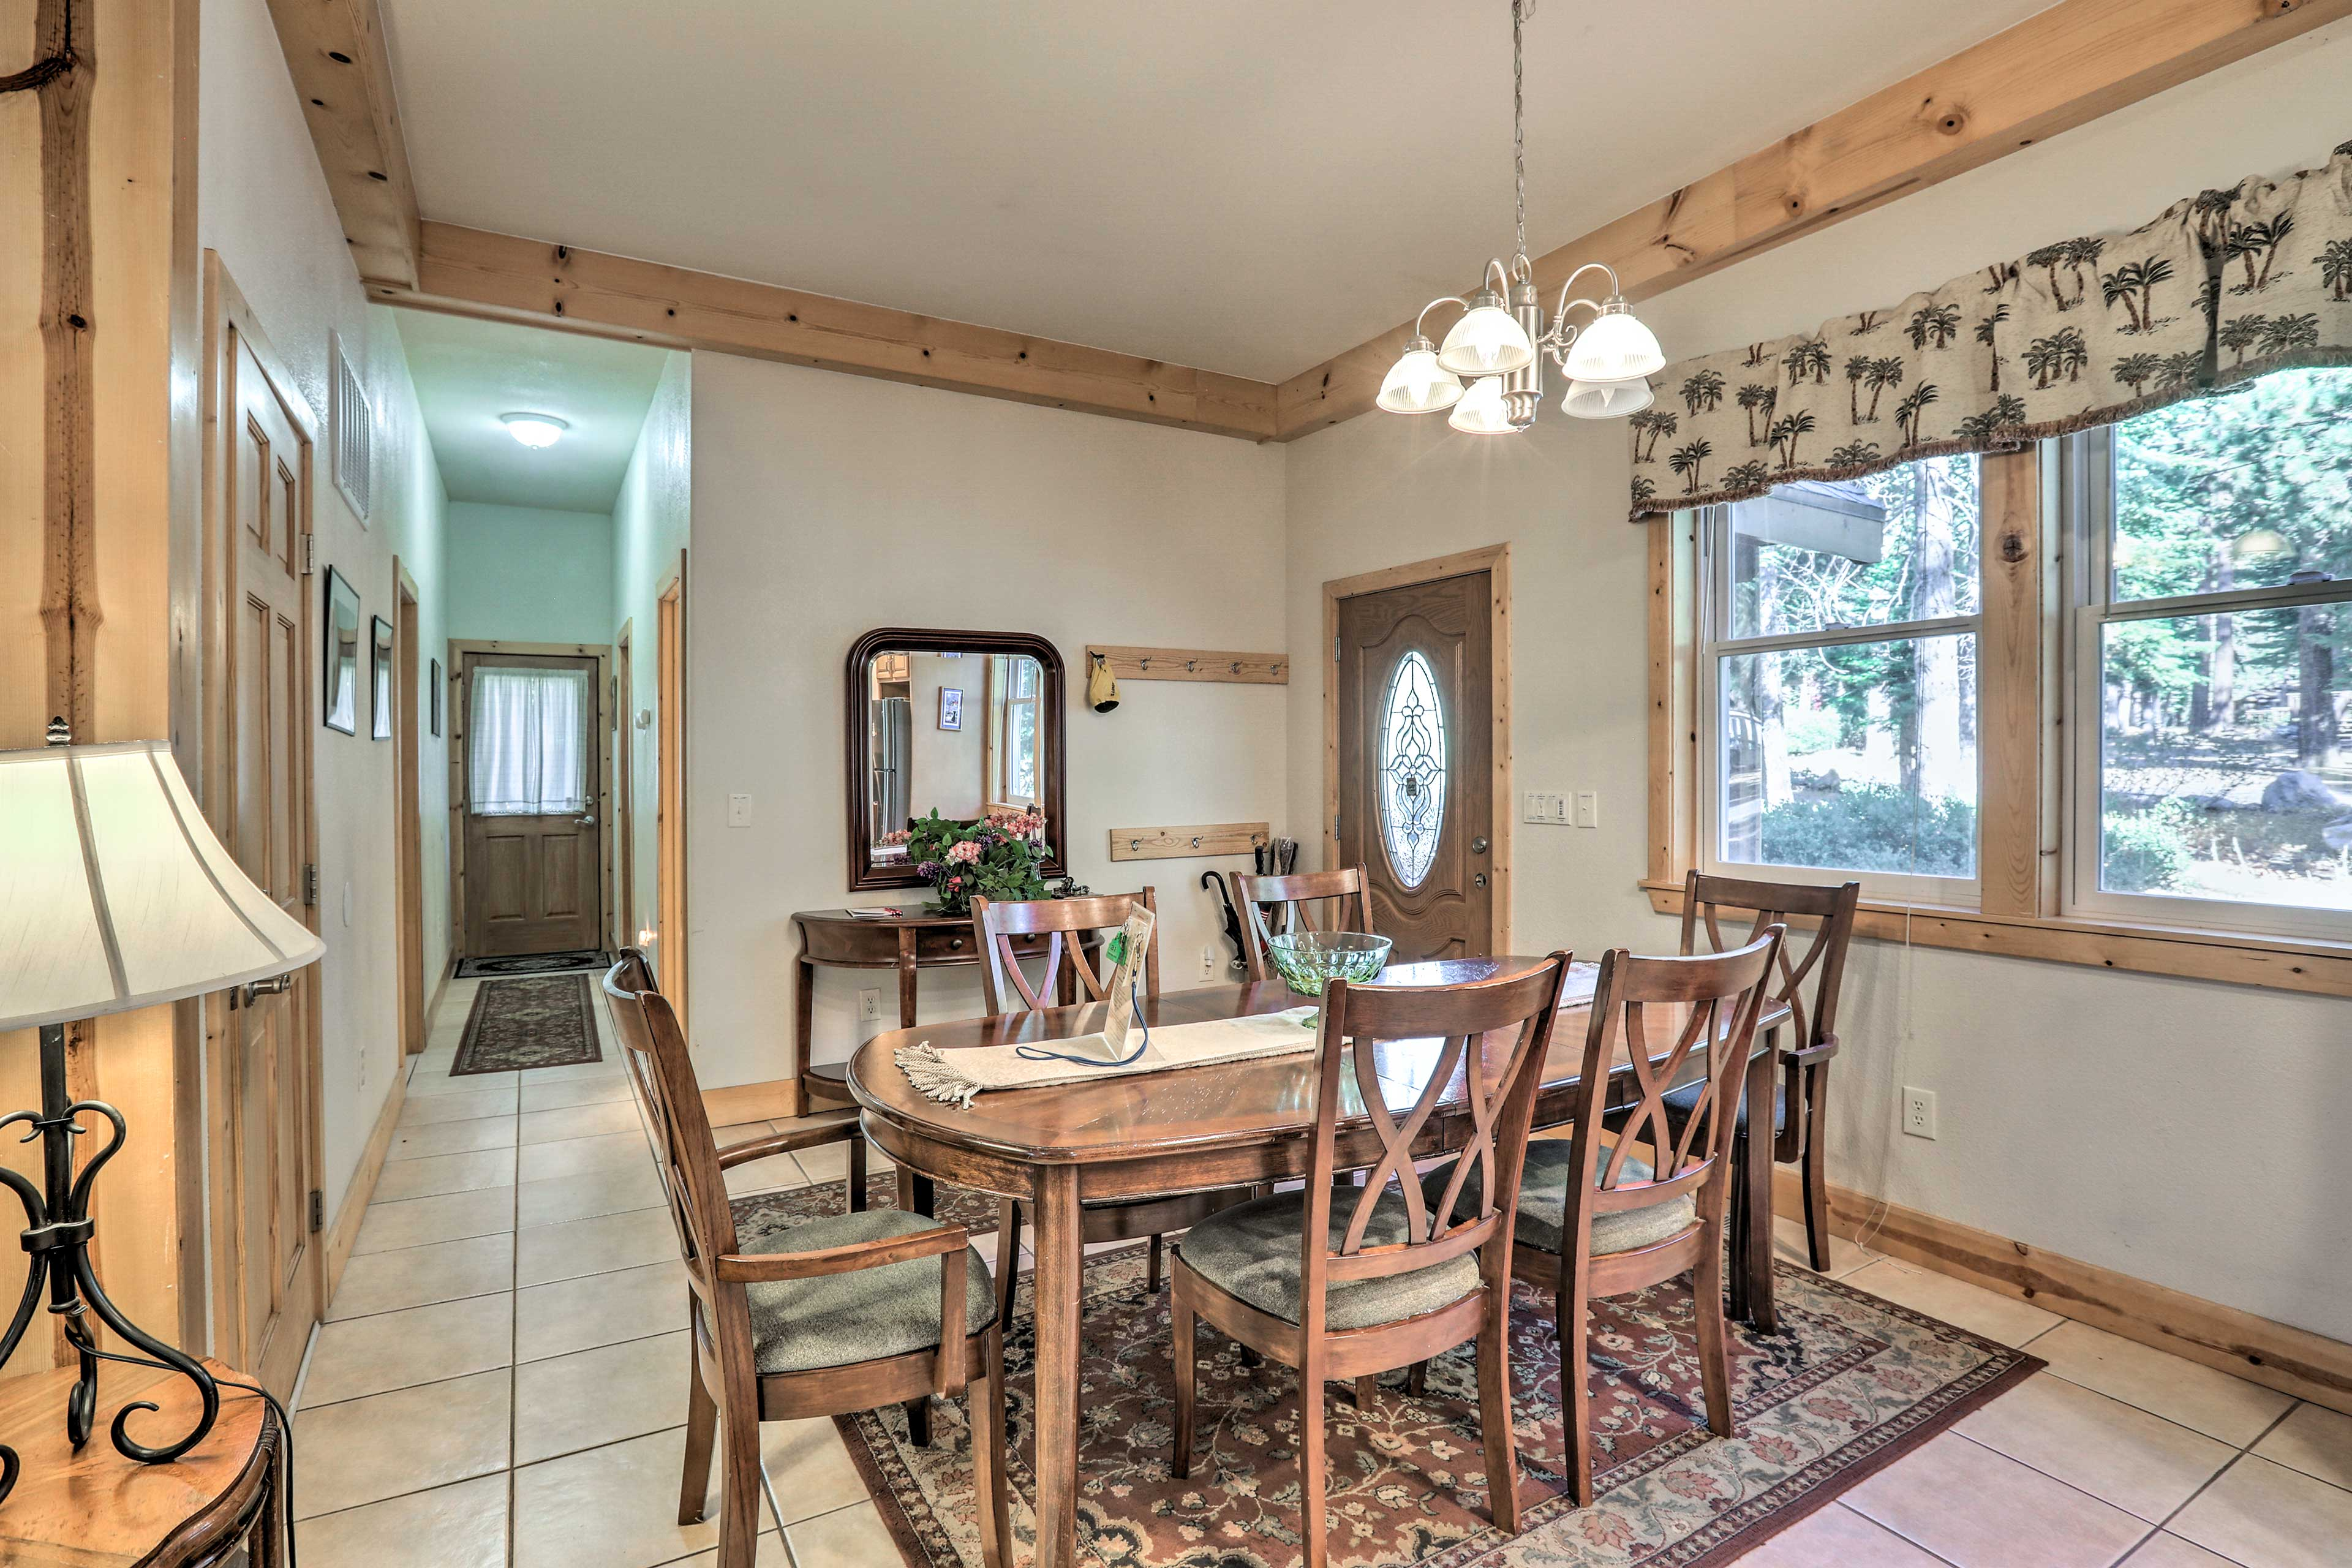 Make memories at the 6-person dining table adjacent to the kitchen.